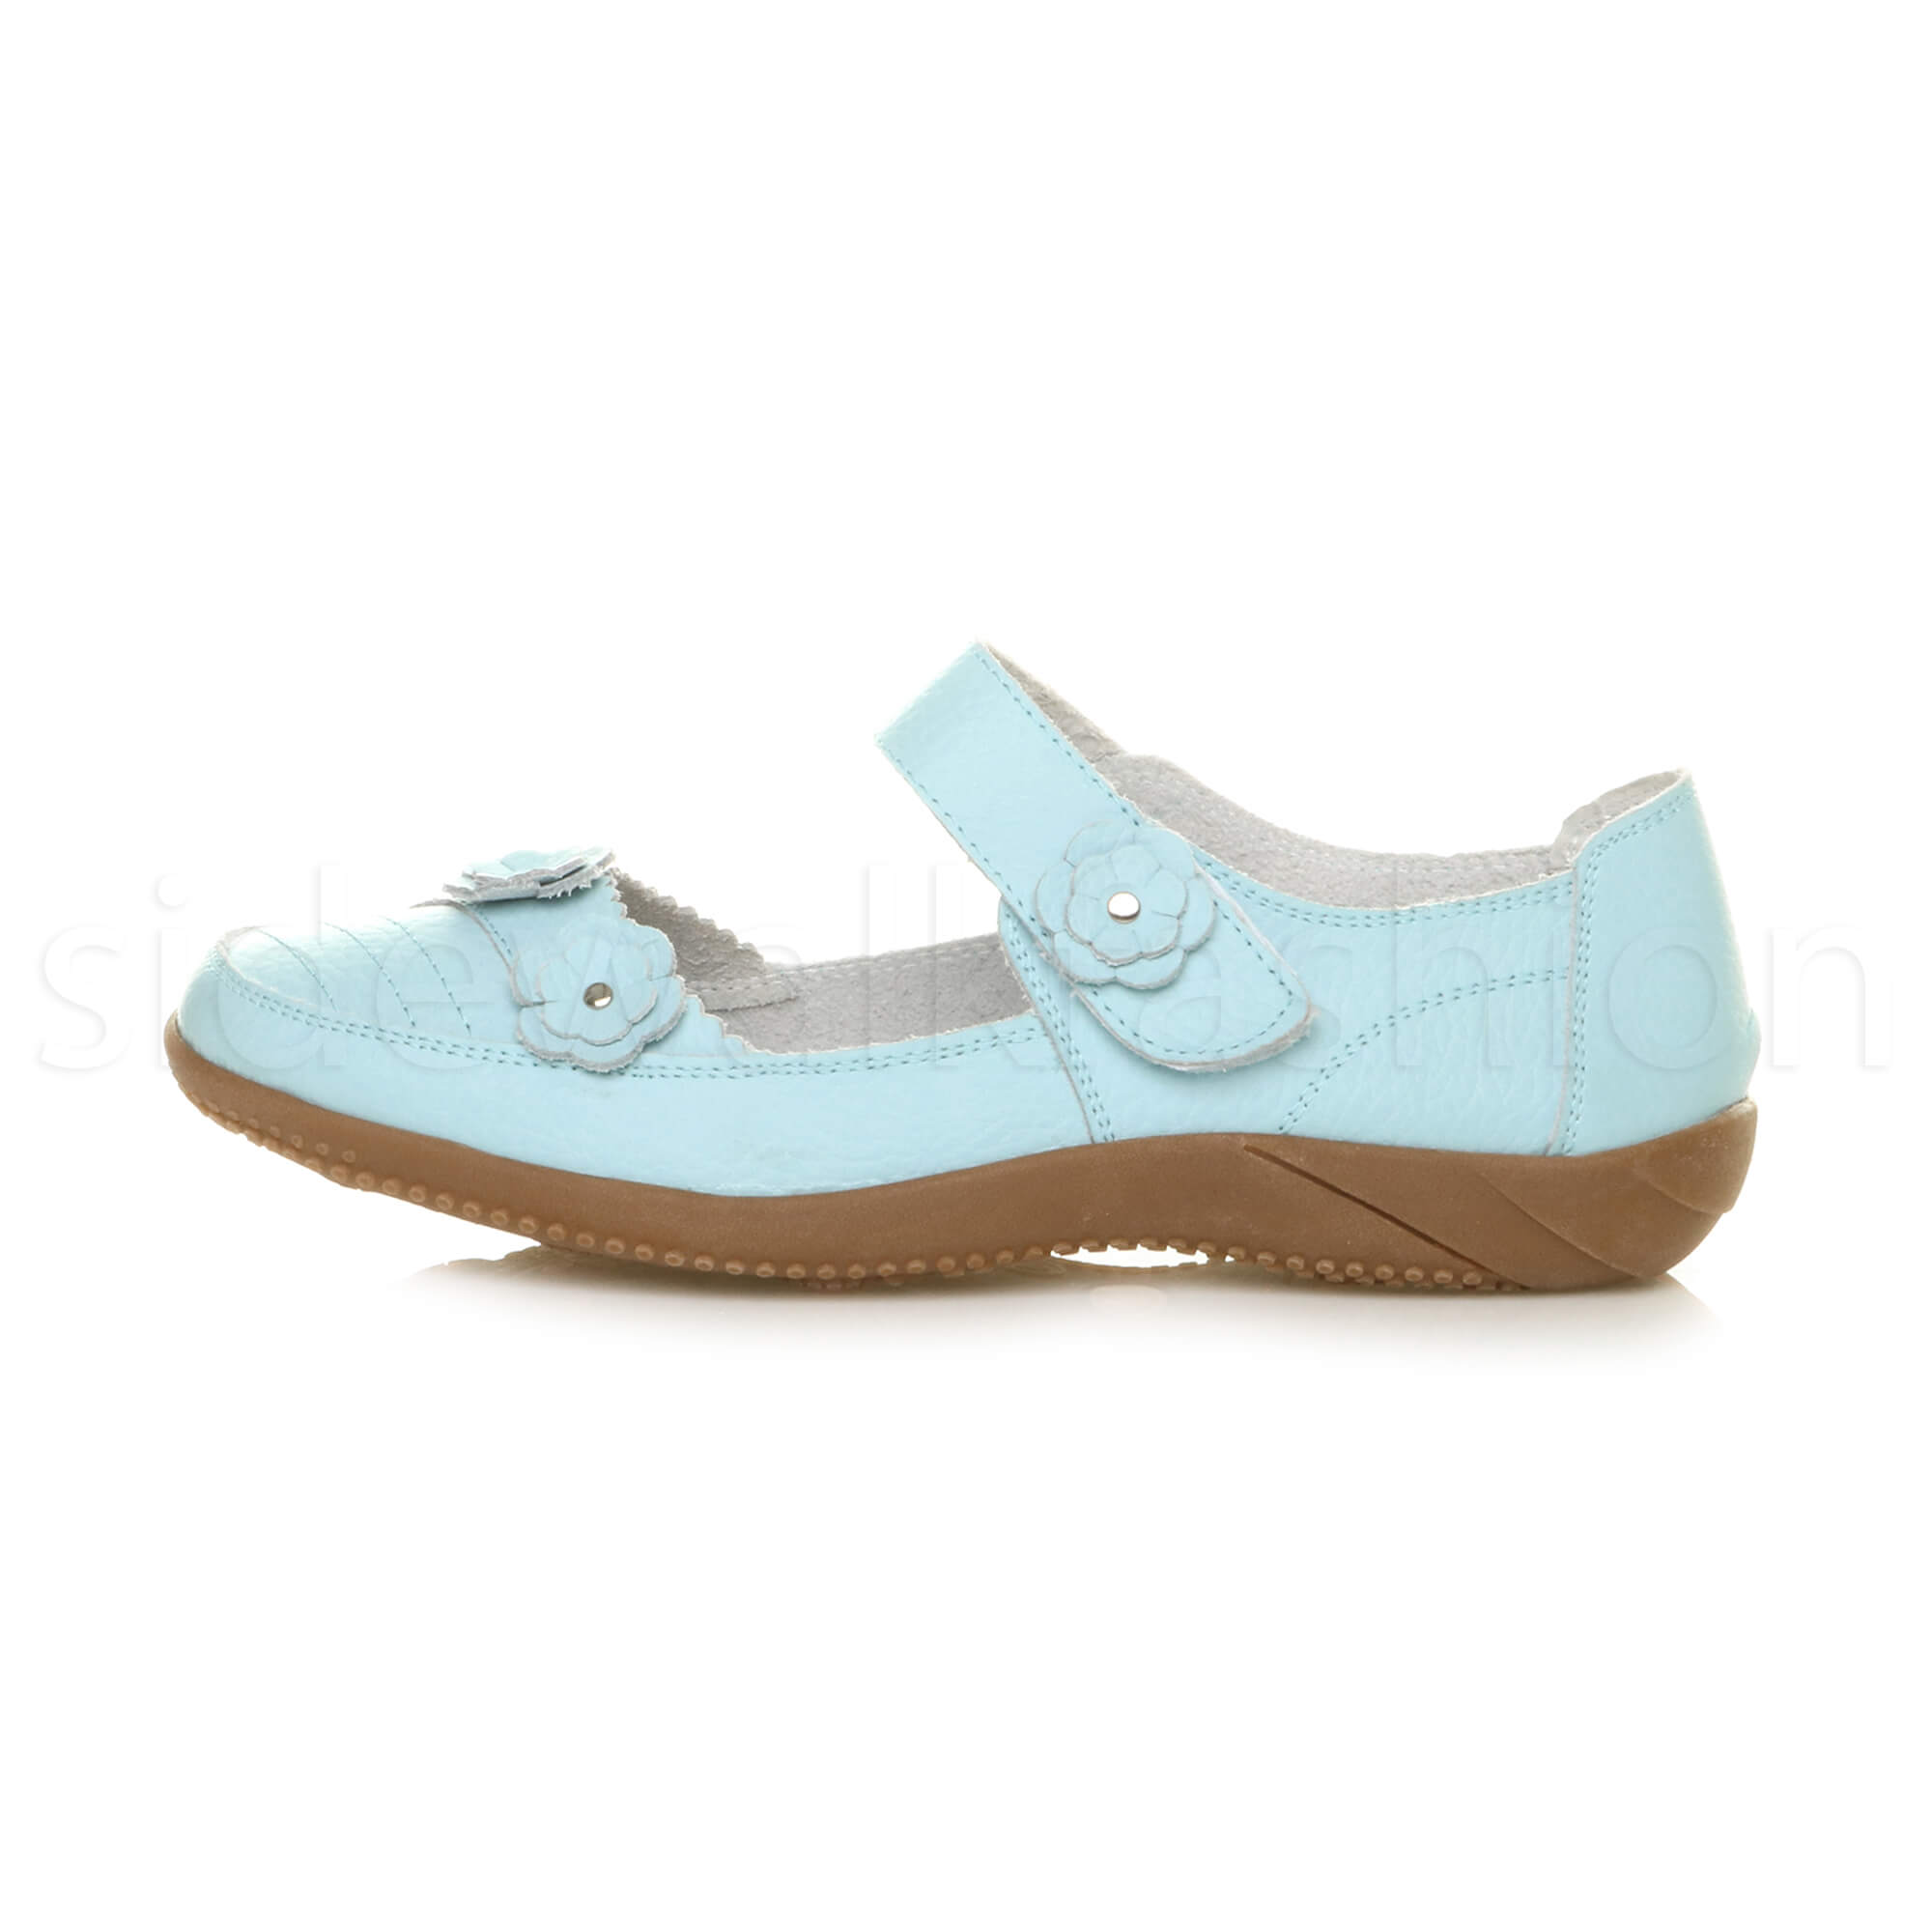 Womens-ladies-leather-comfort-walking-casual-sandals-mary-jane-strap-shoes-size thumbnail 48